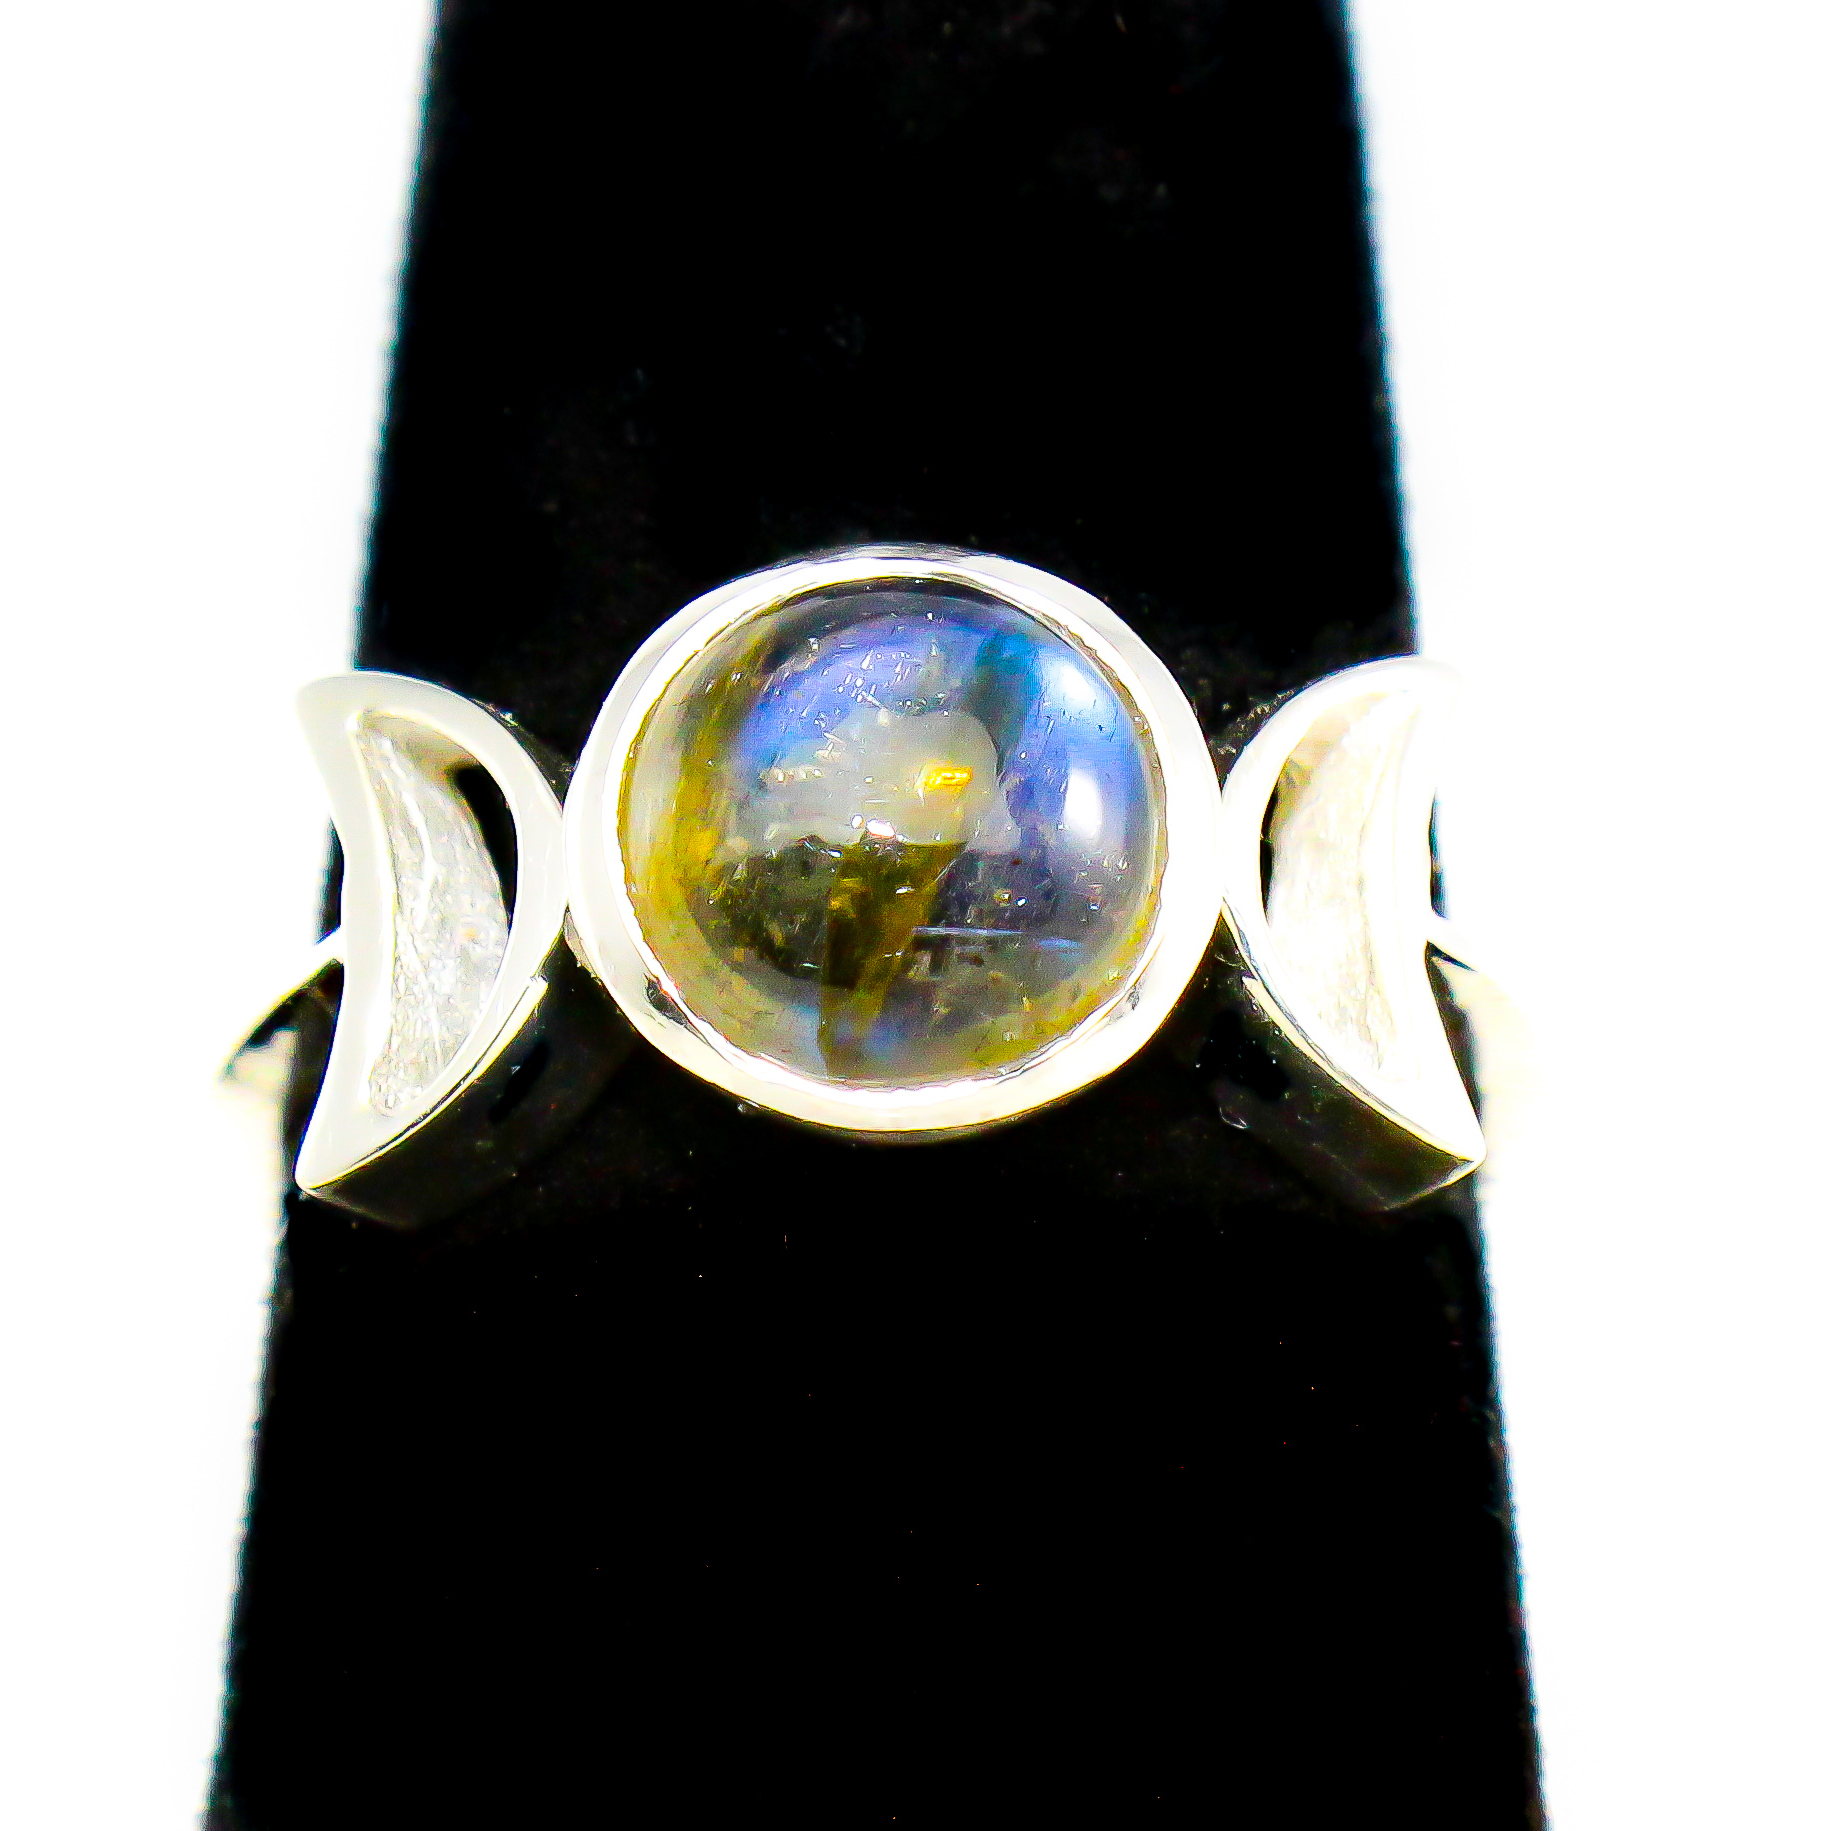 Labradorite Stone Ring with 2 Quarter Moons